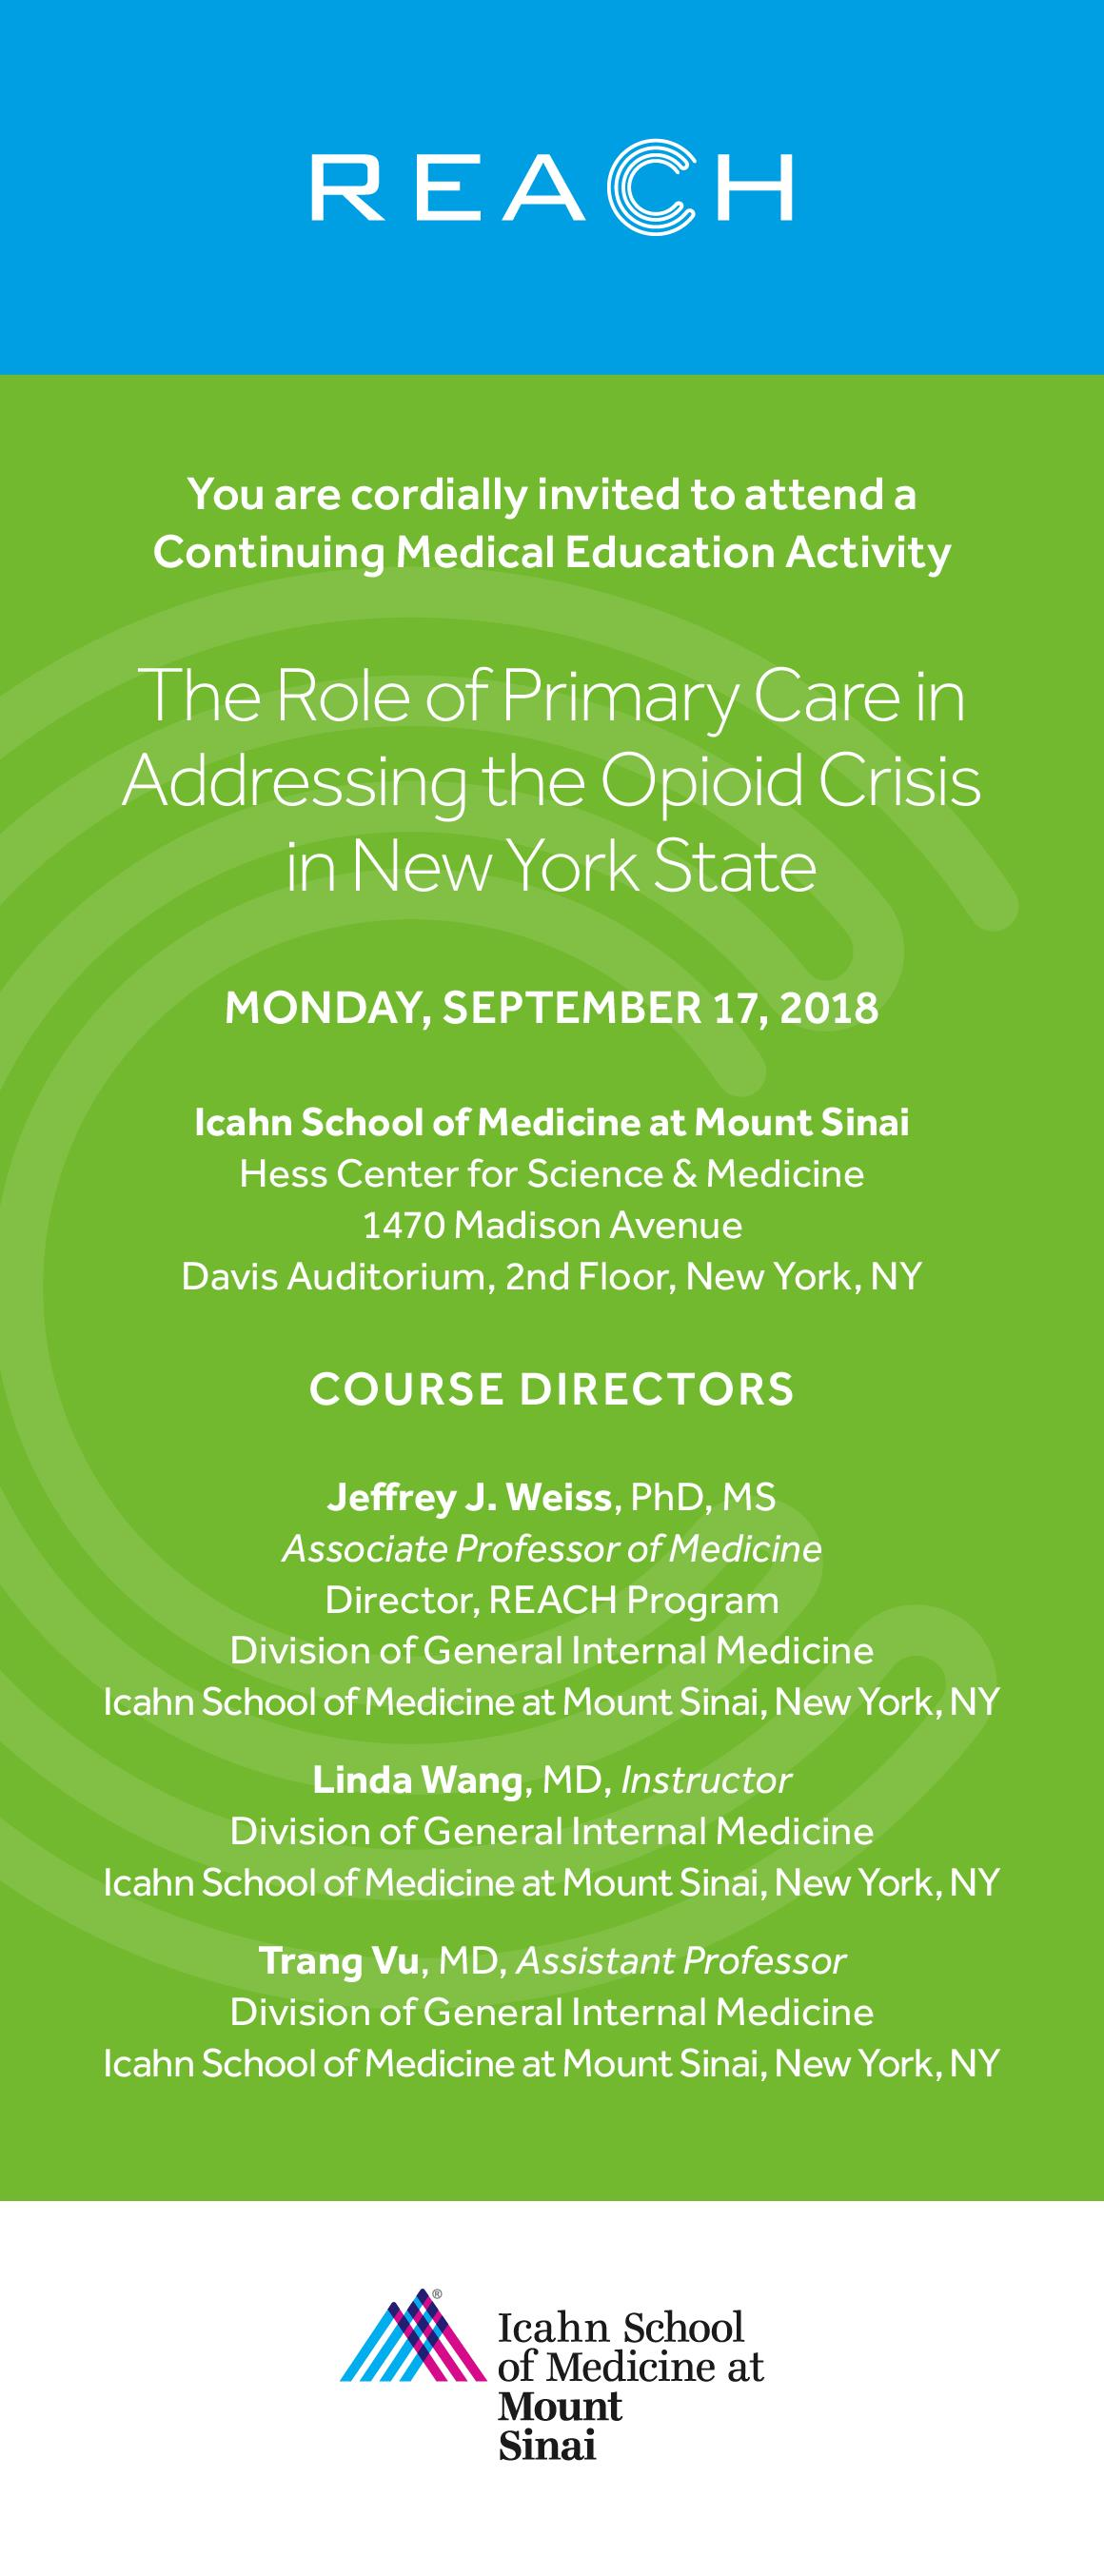 The Role of Primary Care in Addressing the Opioid Crisis in New York State Banner